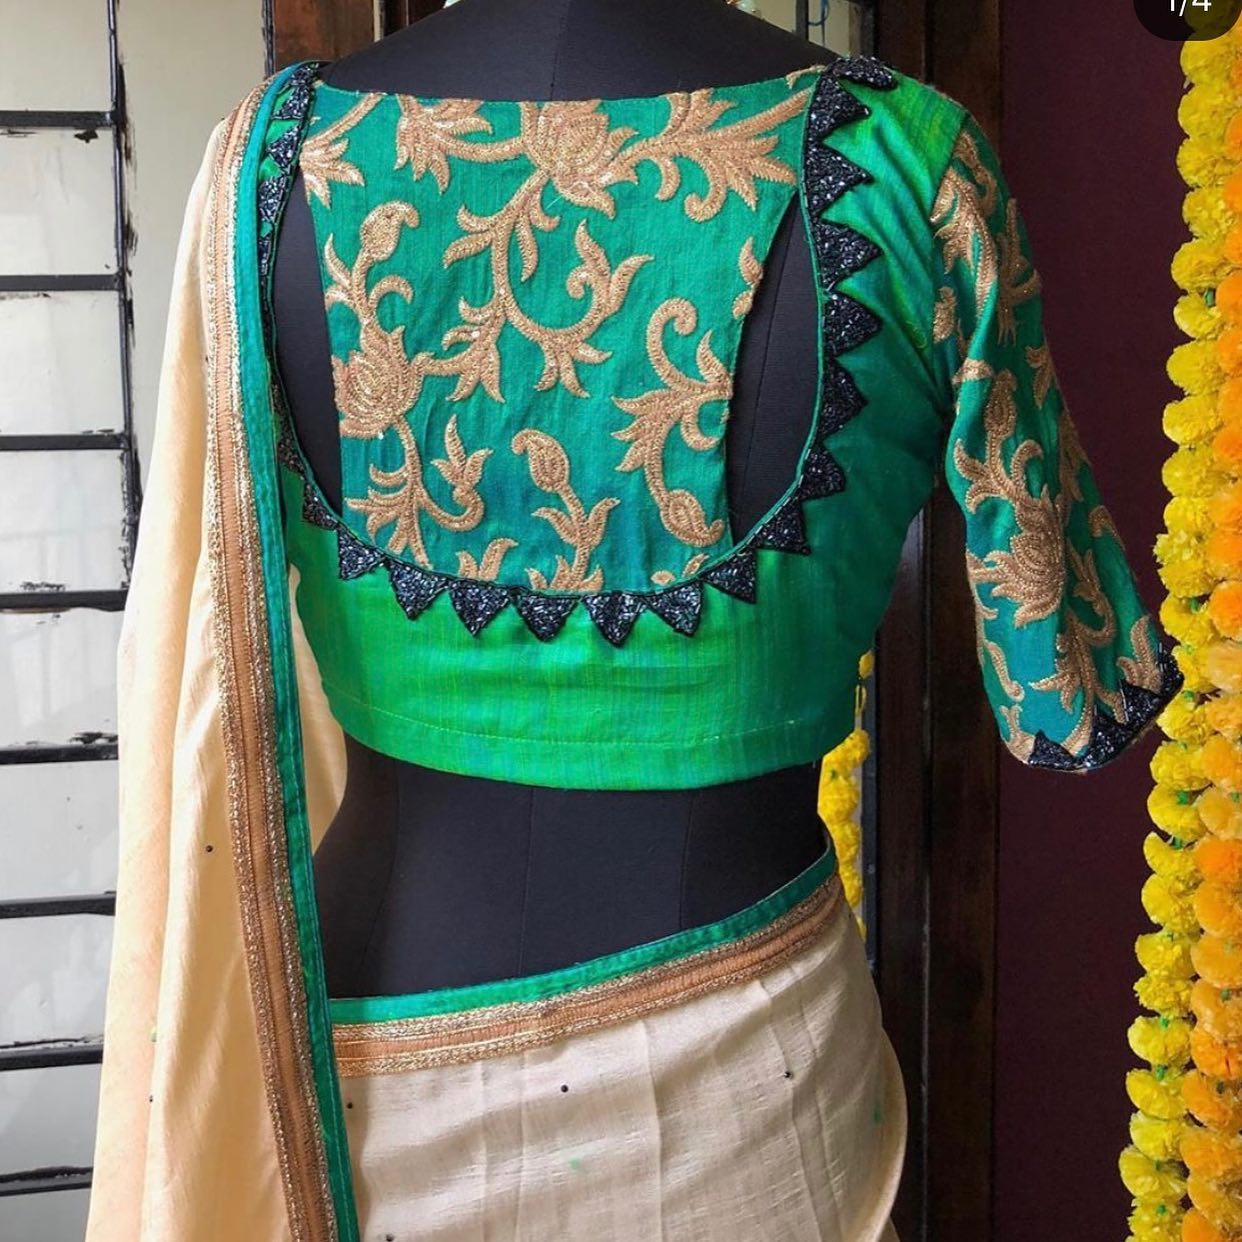 This beige saree and blouse set is crafted in silk lurex. silk saree with non transparent saree with heavy embroidery silk blouse with patterned back and heavy crystal work for yoke sleeves and back.The blouse features a round neck 3/4th sleeves  a patterned details at the back  embroidery details. Style this set with a pair of embellished heels and statement accessories to complete the look. For orders watsapp  on 9790242572 Mail  on orders@Threadslabel.com | dulhan lehenga choli | chaniya choli blouse | lehenga designs 2020 for girl | 2020-10-26